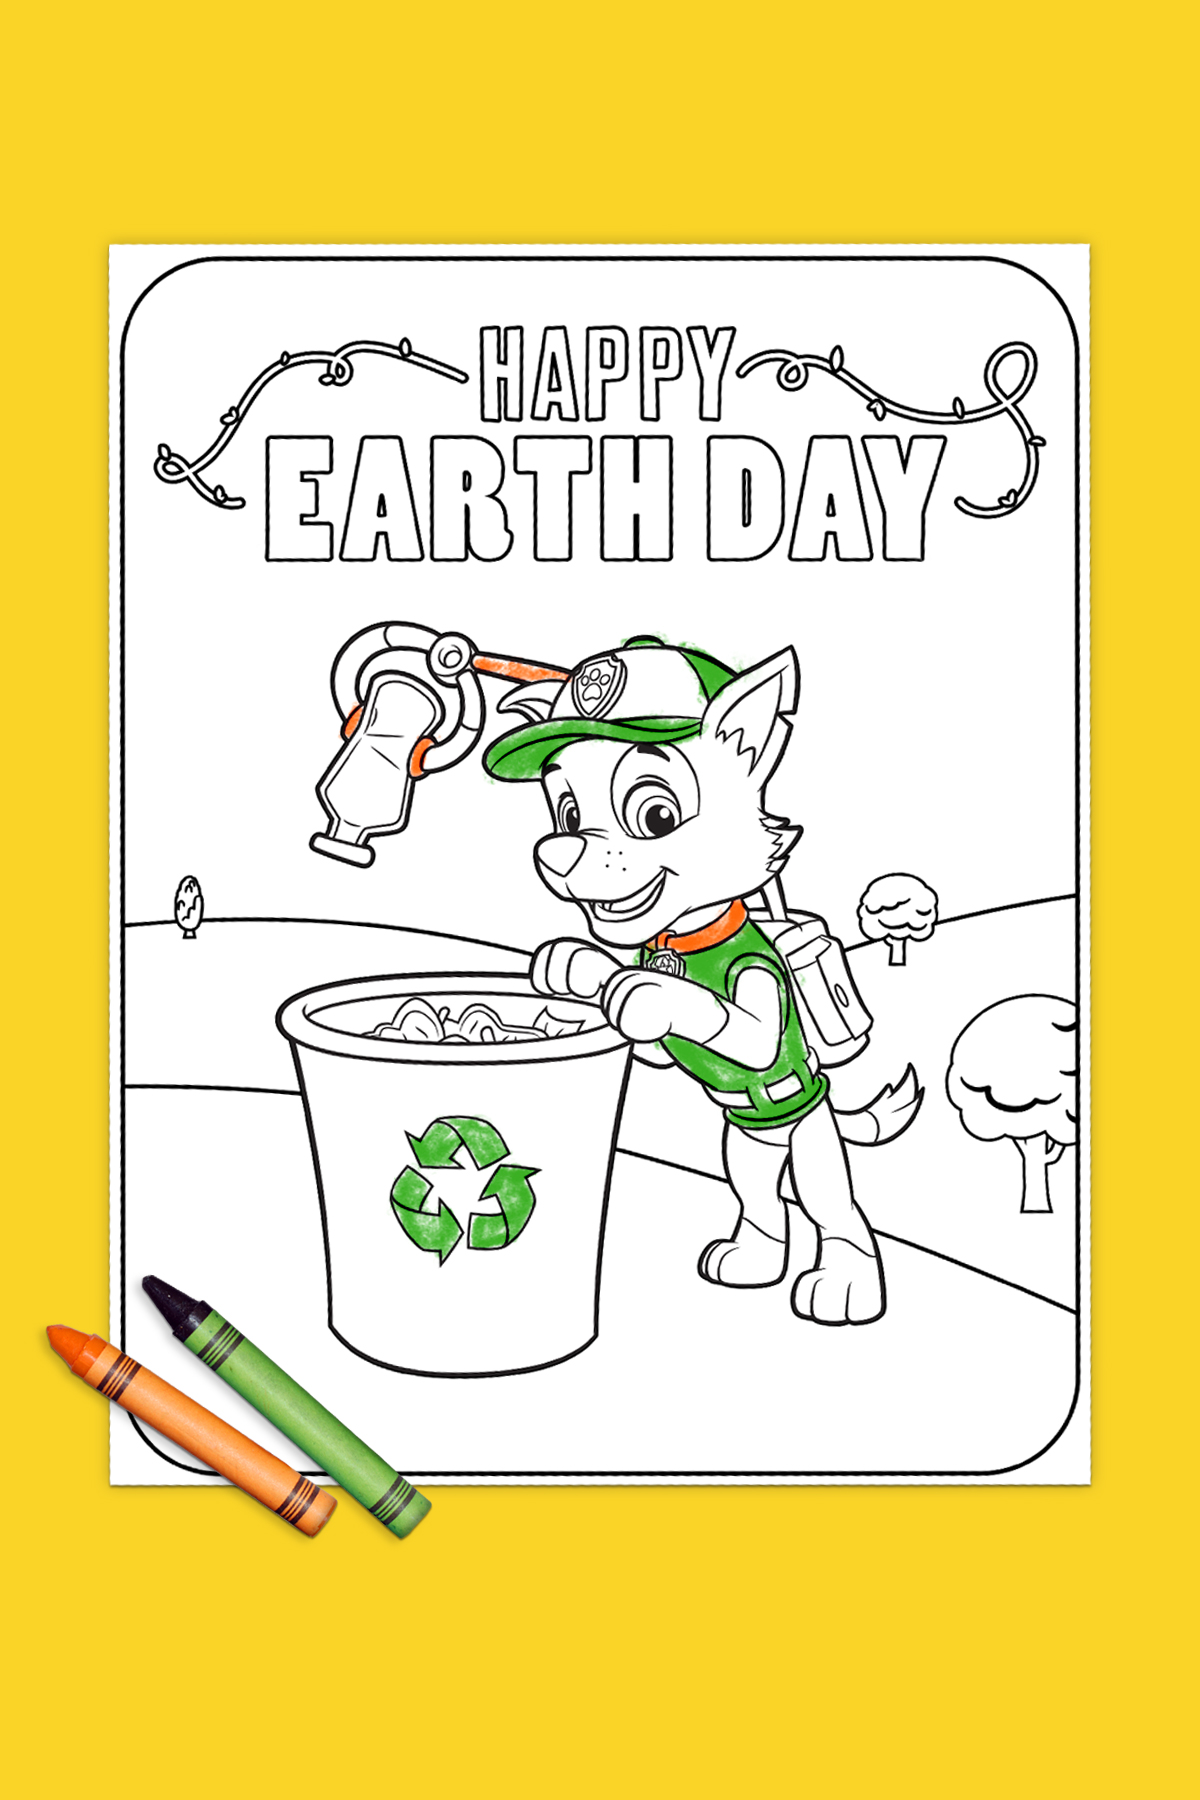 Paw Patrol Rocky Earth Day Coloring Page Nickelodeon Parents